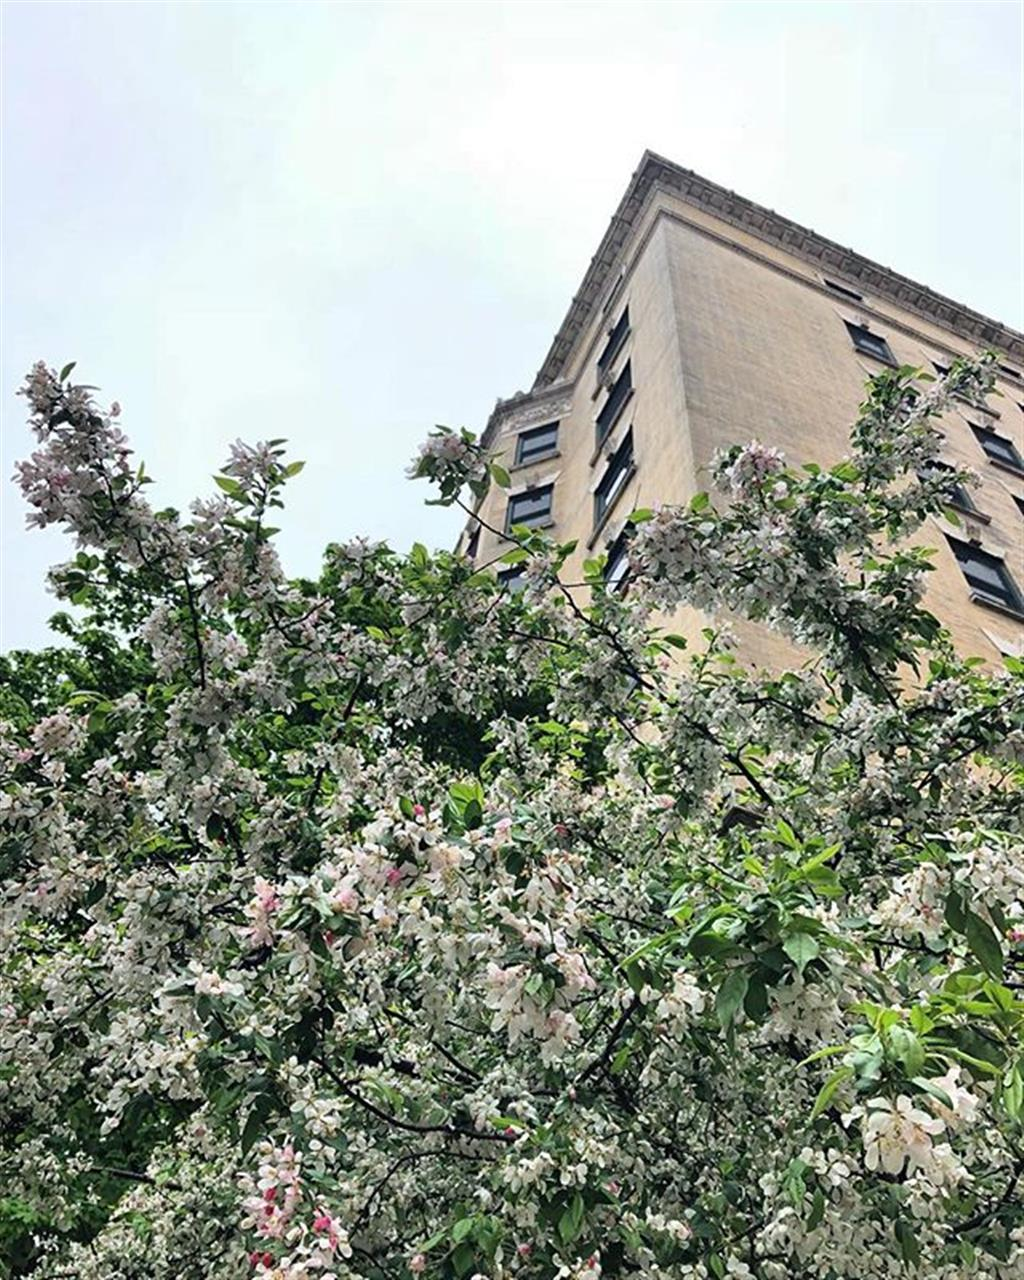 Love this burst of flowers against historic #ChicagoArchitecture .. .. #illinoisrealestate #chicagorealestate #chicago #leadingrelocal #bairdwarner #springflowers #flowers #lakeview #lake